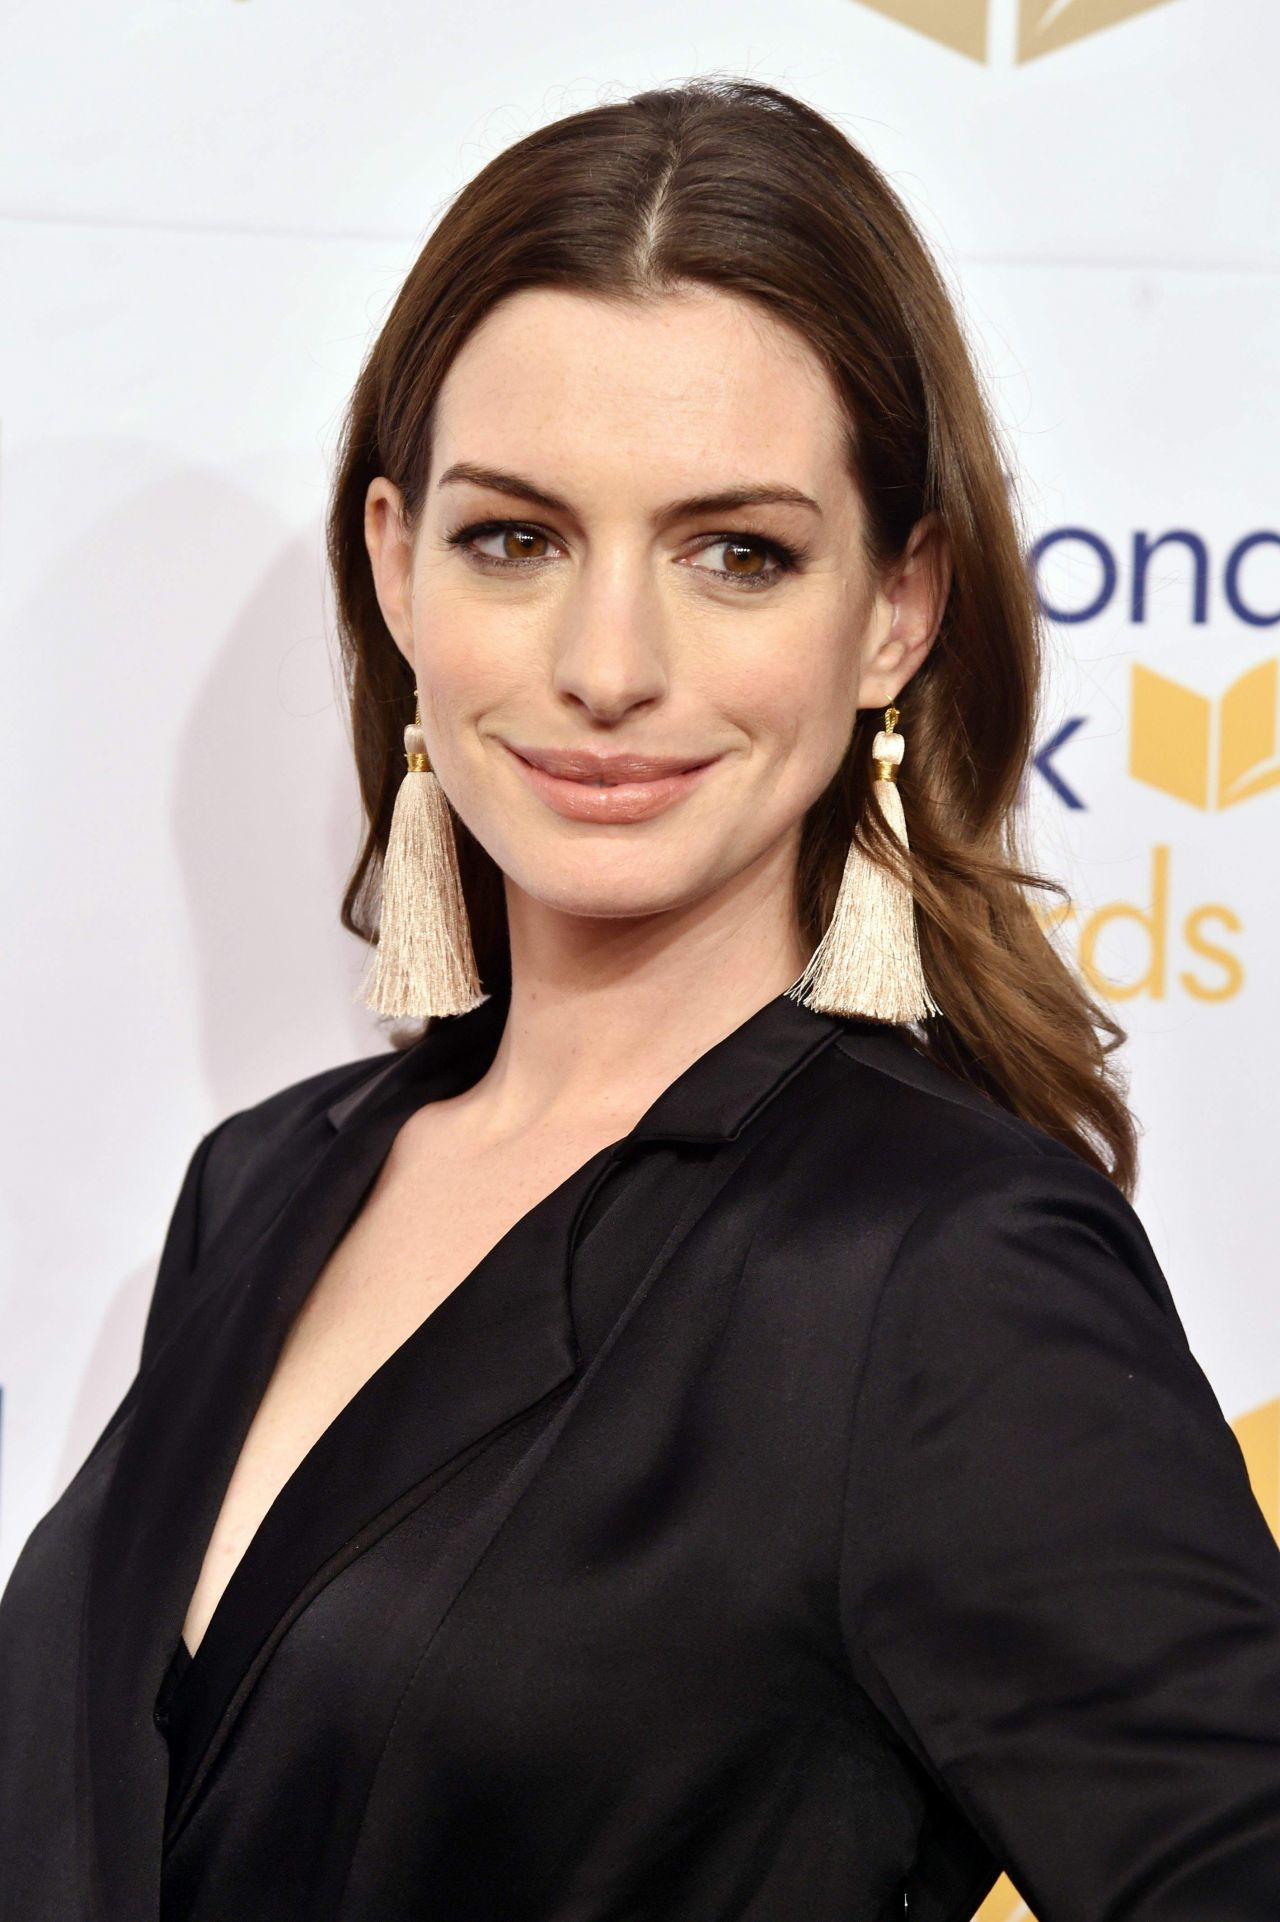 Anne Hathaway - National Book Awards 2017 in New York City Anne Hathaway